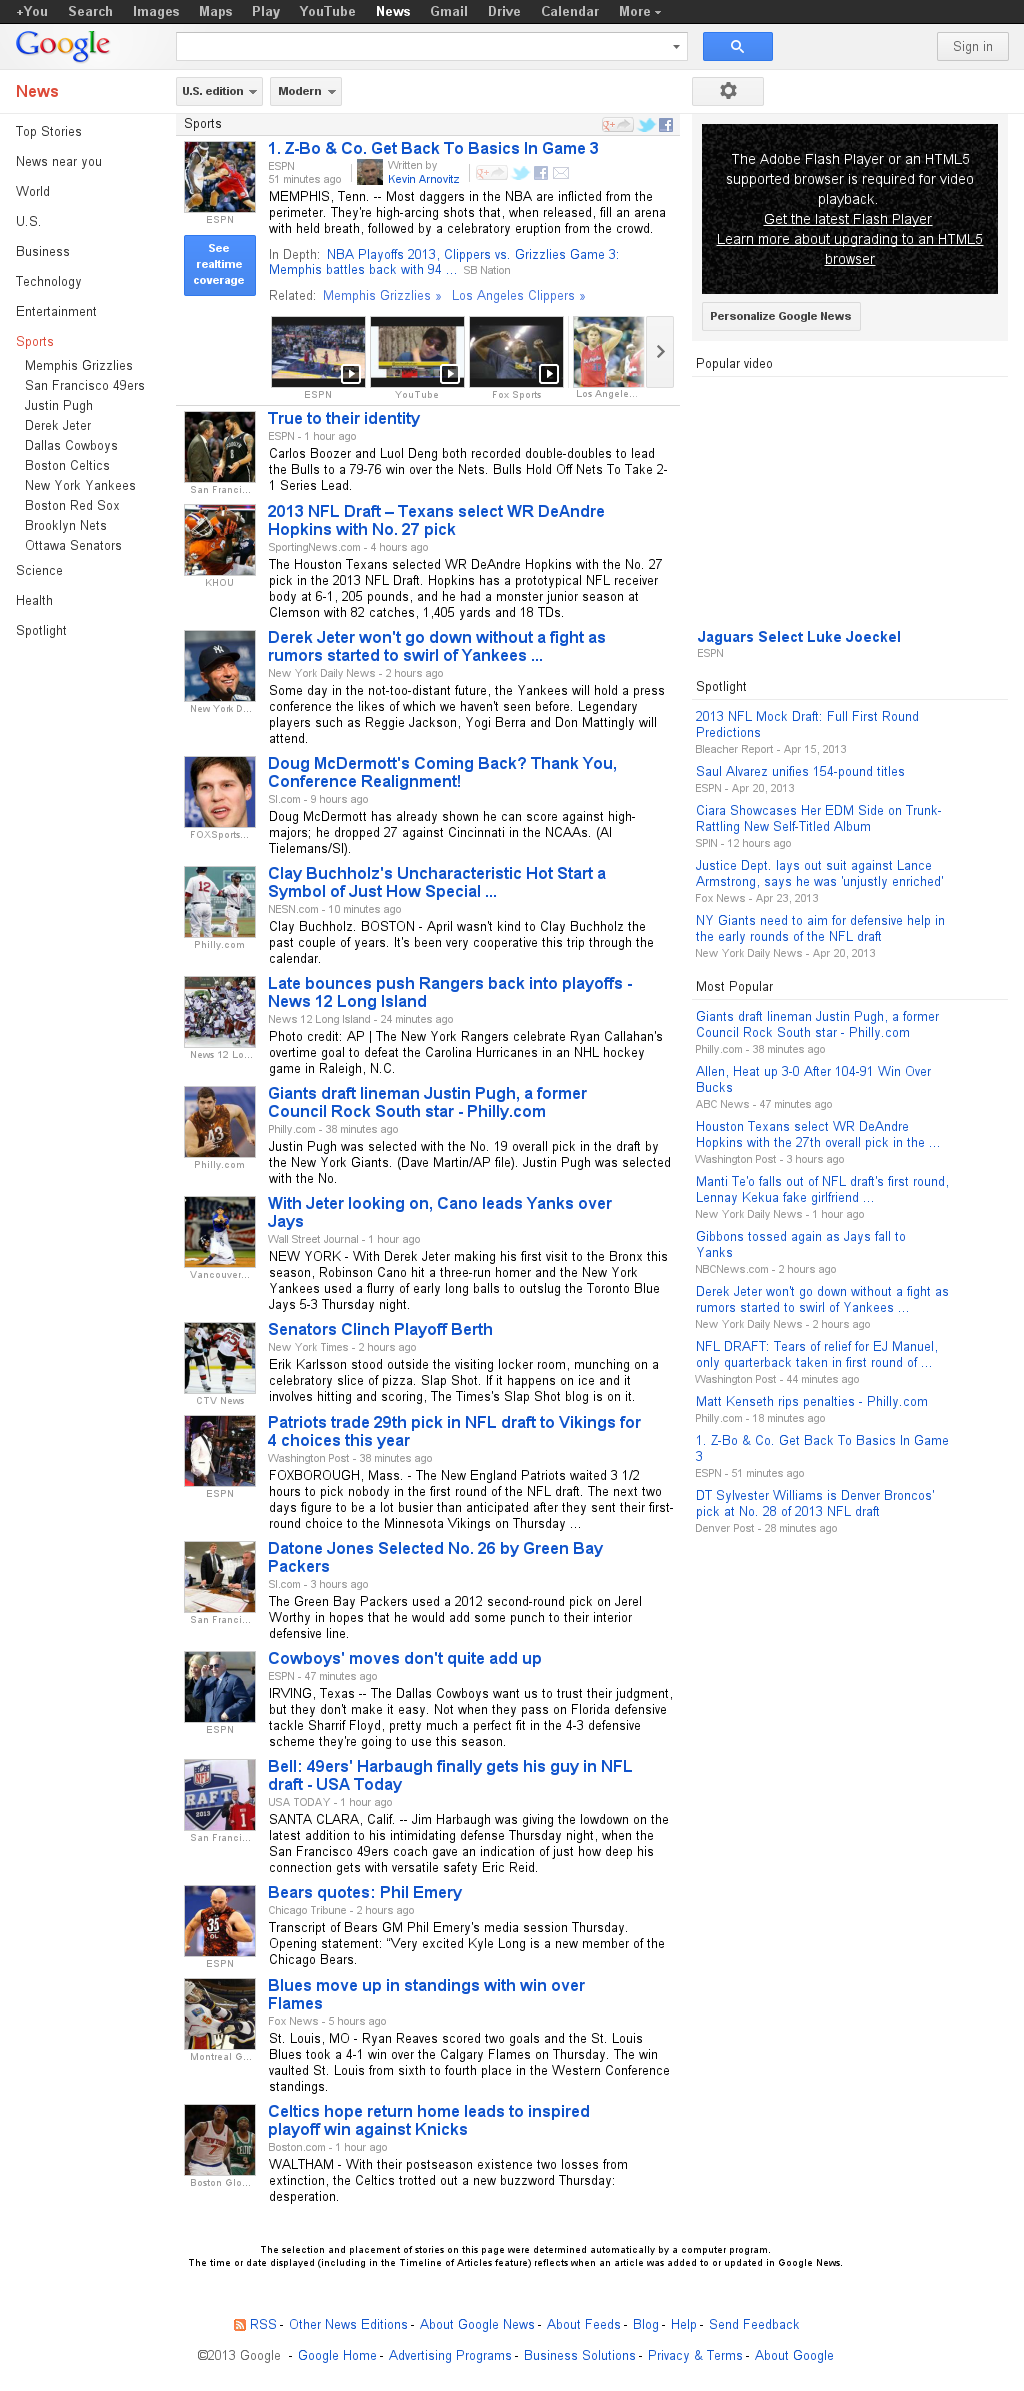 Google News: Sports at Friday April 26, 2013, 8:08 a.m. UTC